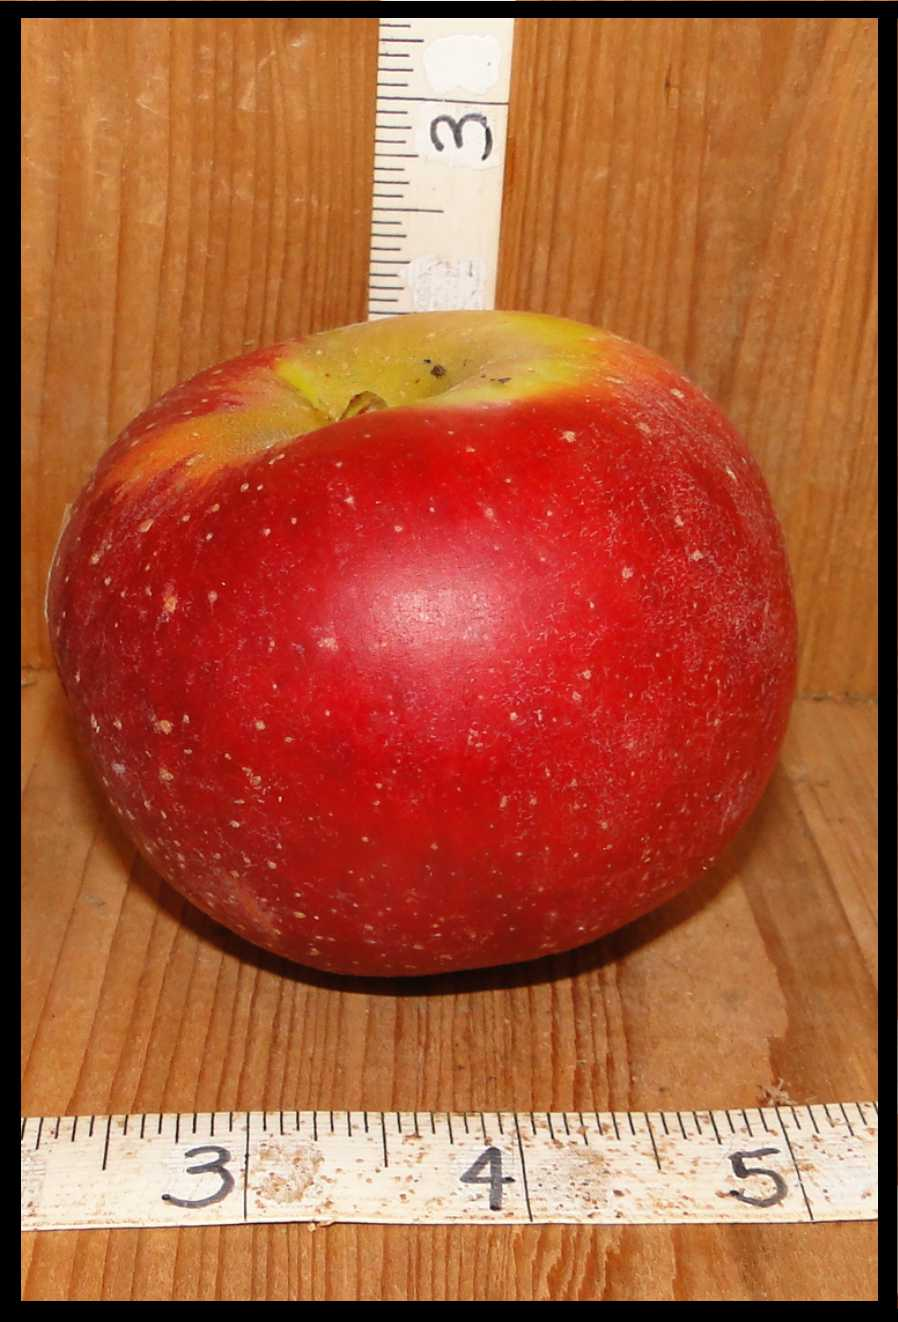 red apple with yellow on the stem end and small white spots